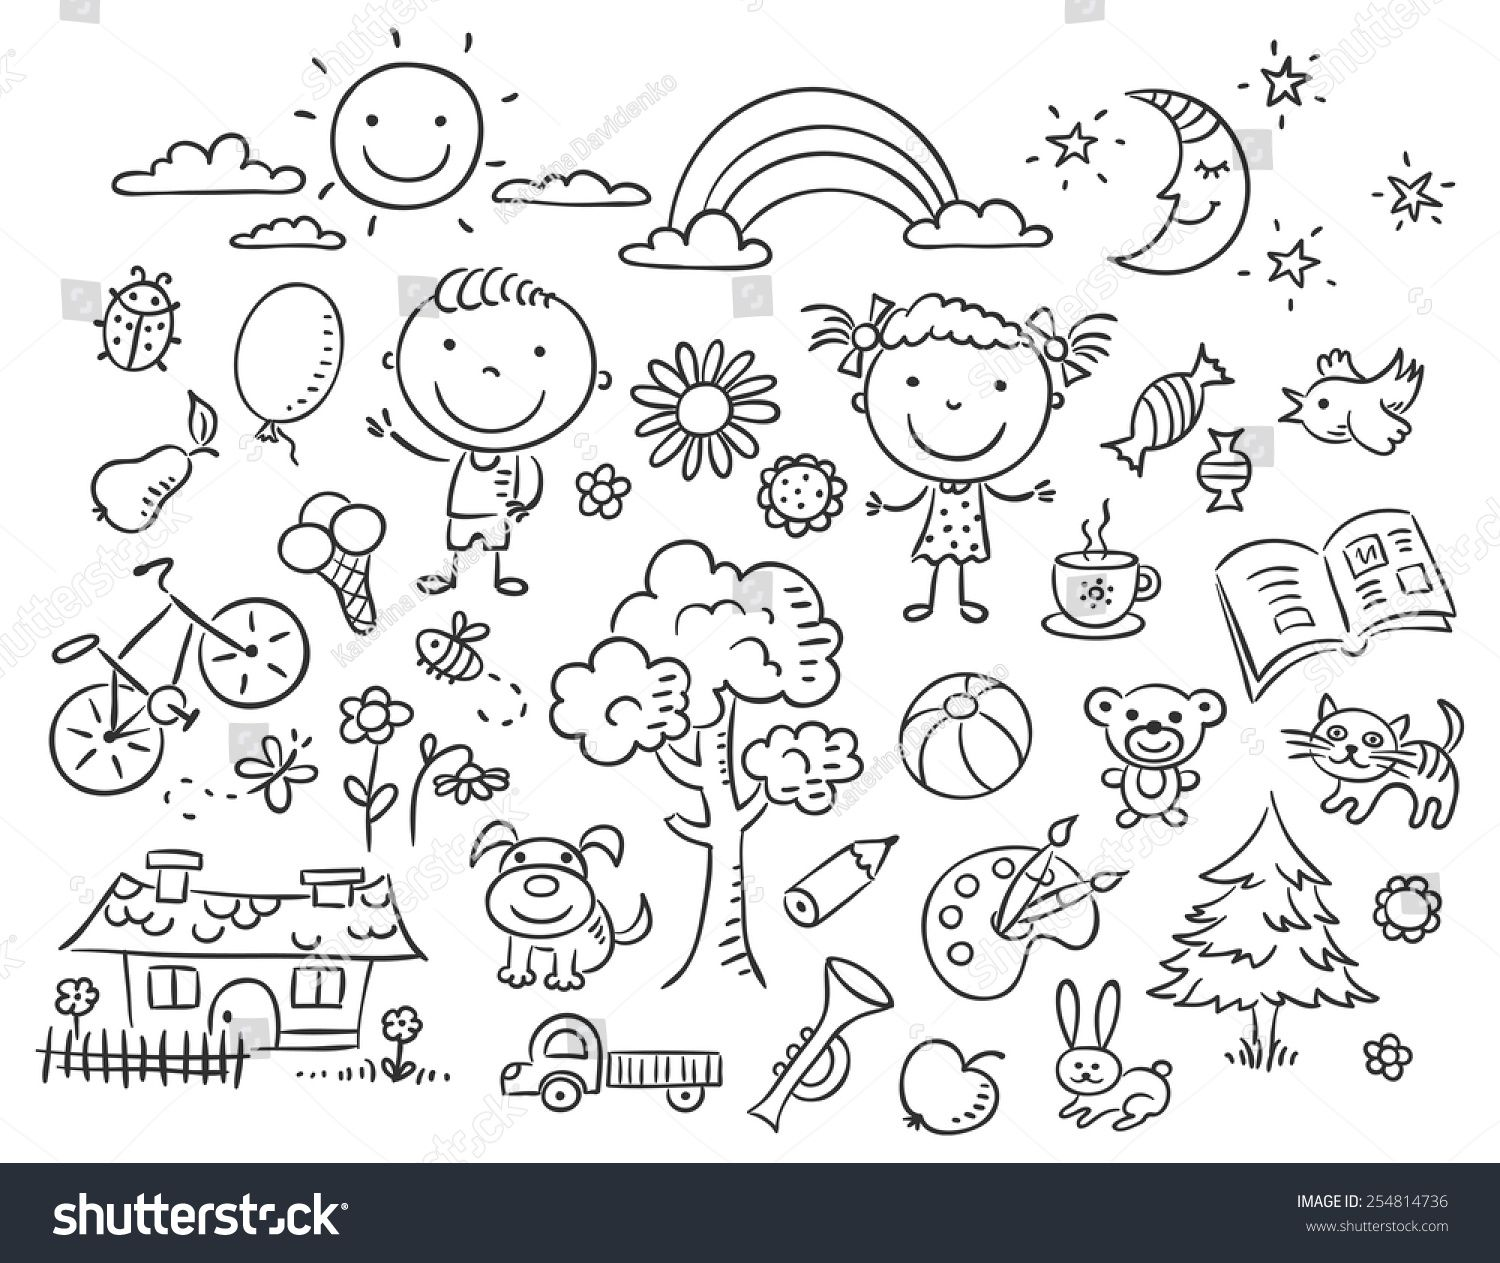 Doodle Set Of Objects From A Child S Life Black And White Outline Sponsored Ad Objects Child Doodle Set Doodle Ideeen Illustraties Kleurplaten